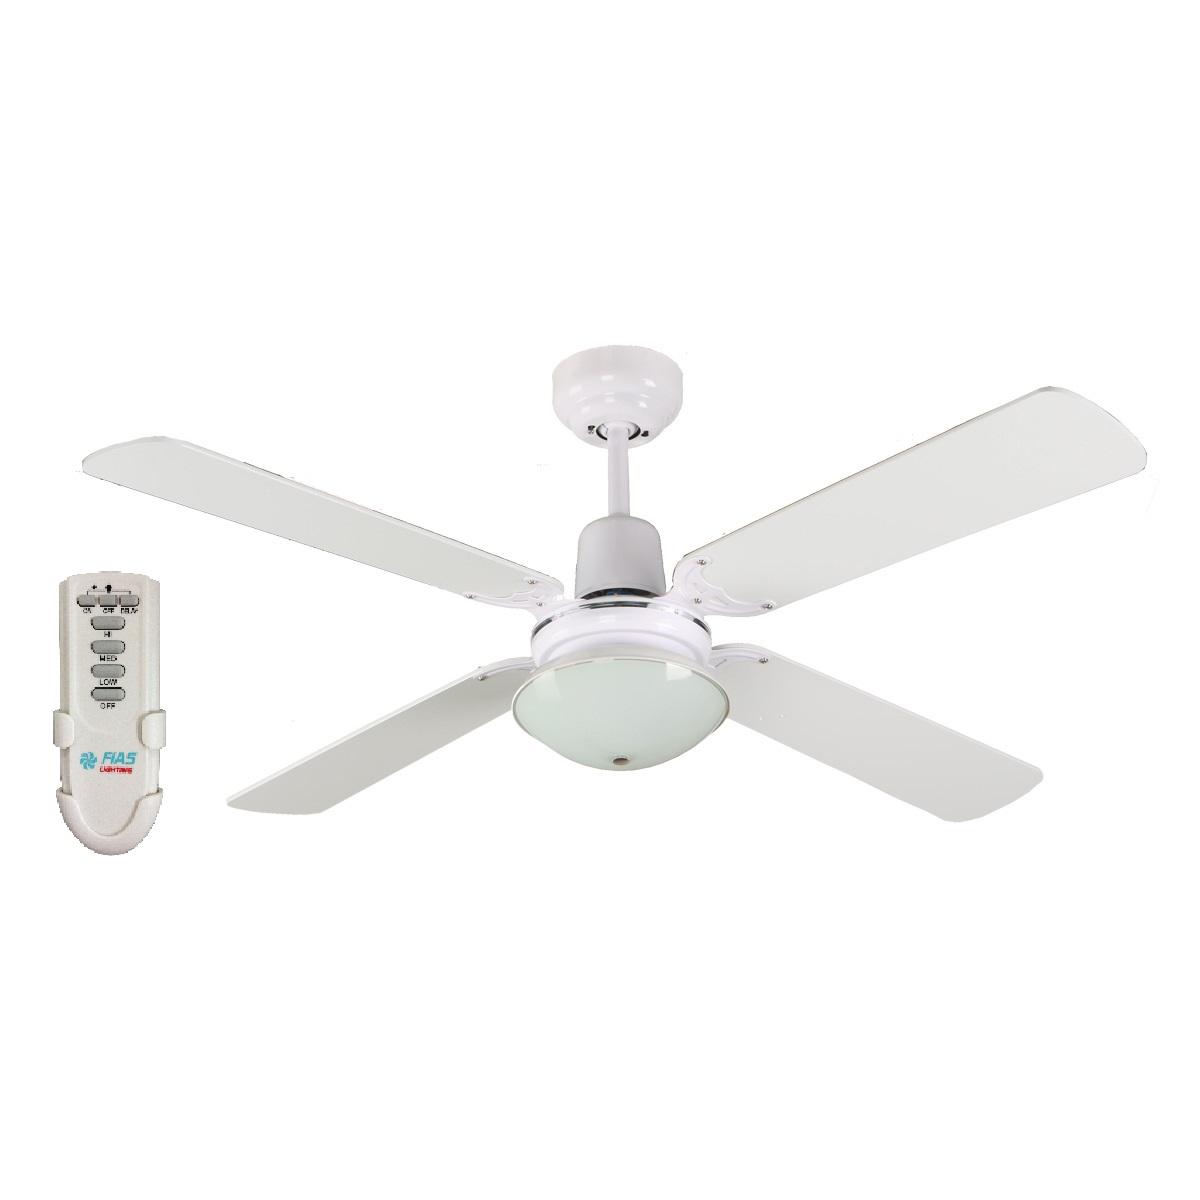 Ramo 48 Inch Ceiling Fan With Light And Remote Control